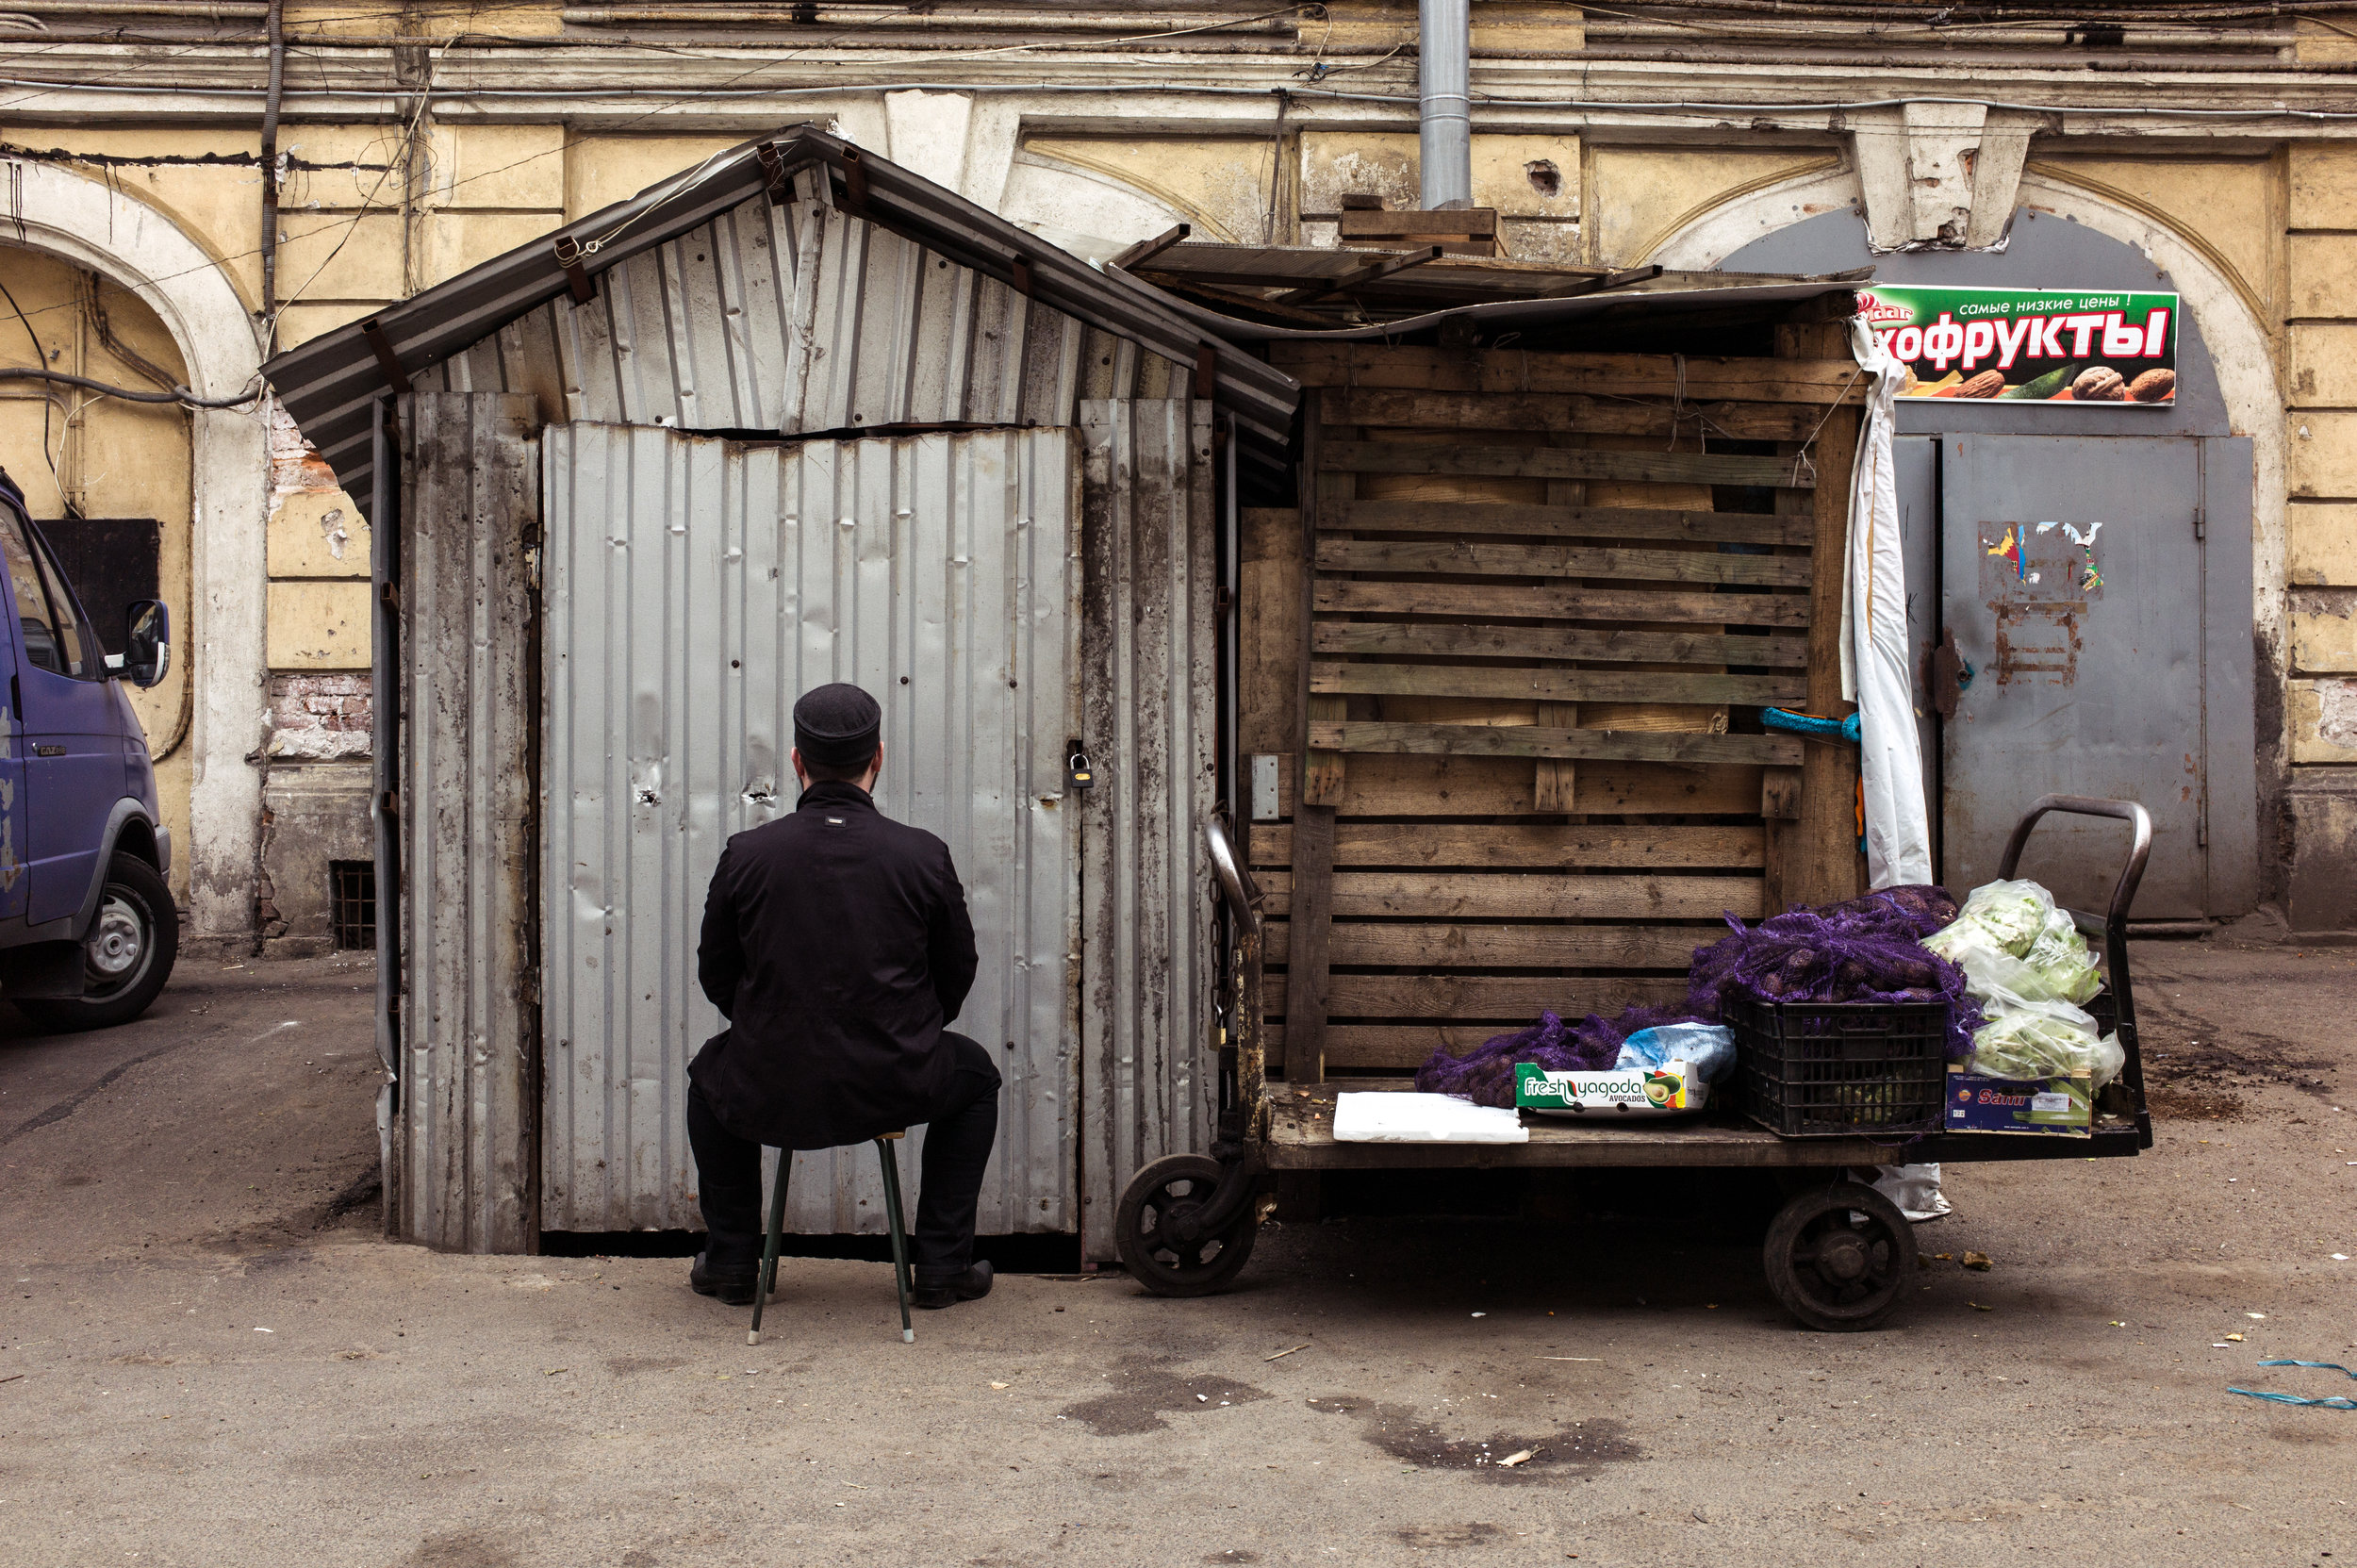 Russia, Saint-Petersburg, 17 May 2015. X, 28, is photographed next to a building which used host a makeshift mosque, now closed, where he converted about 6-7 years ago. He got interested in Islam by randomly opening a web site dedicated to this religion. He asked not to be identified as he still resides in Russia.